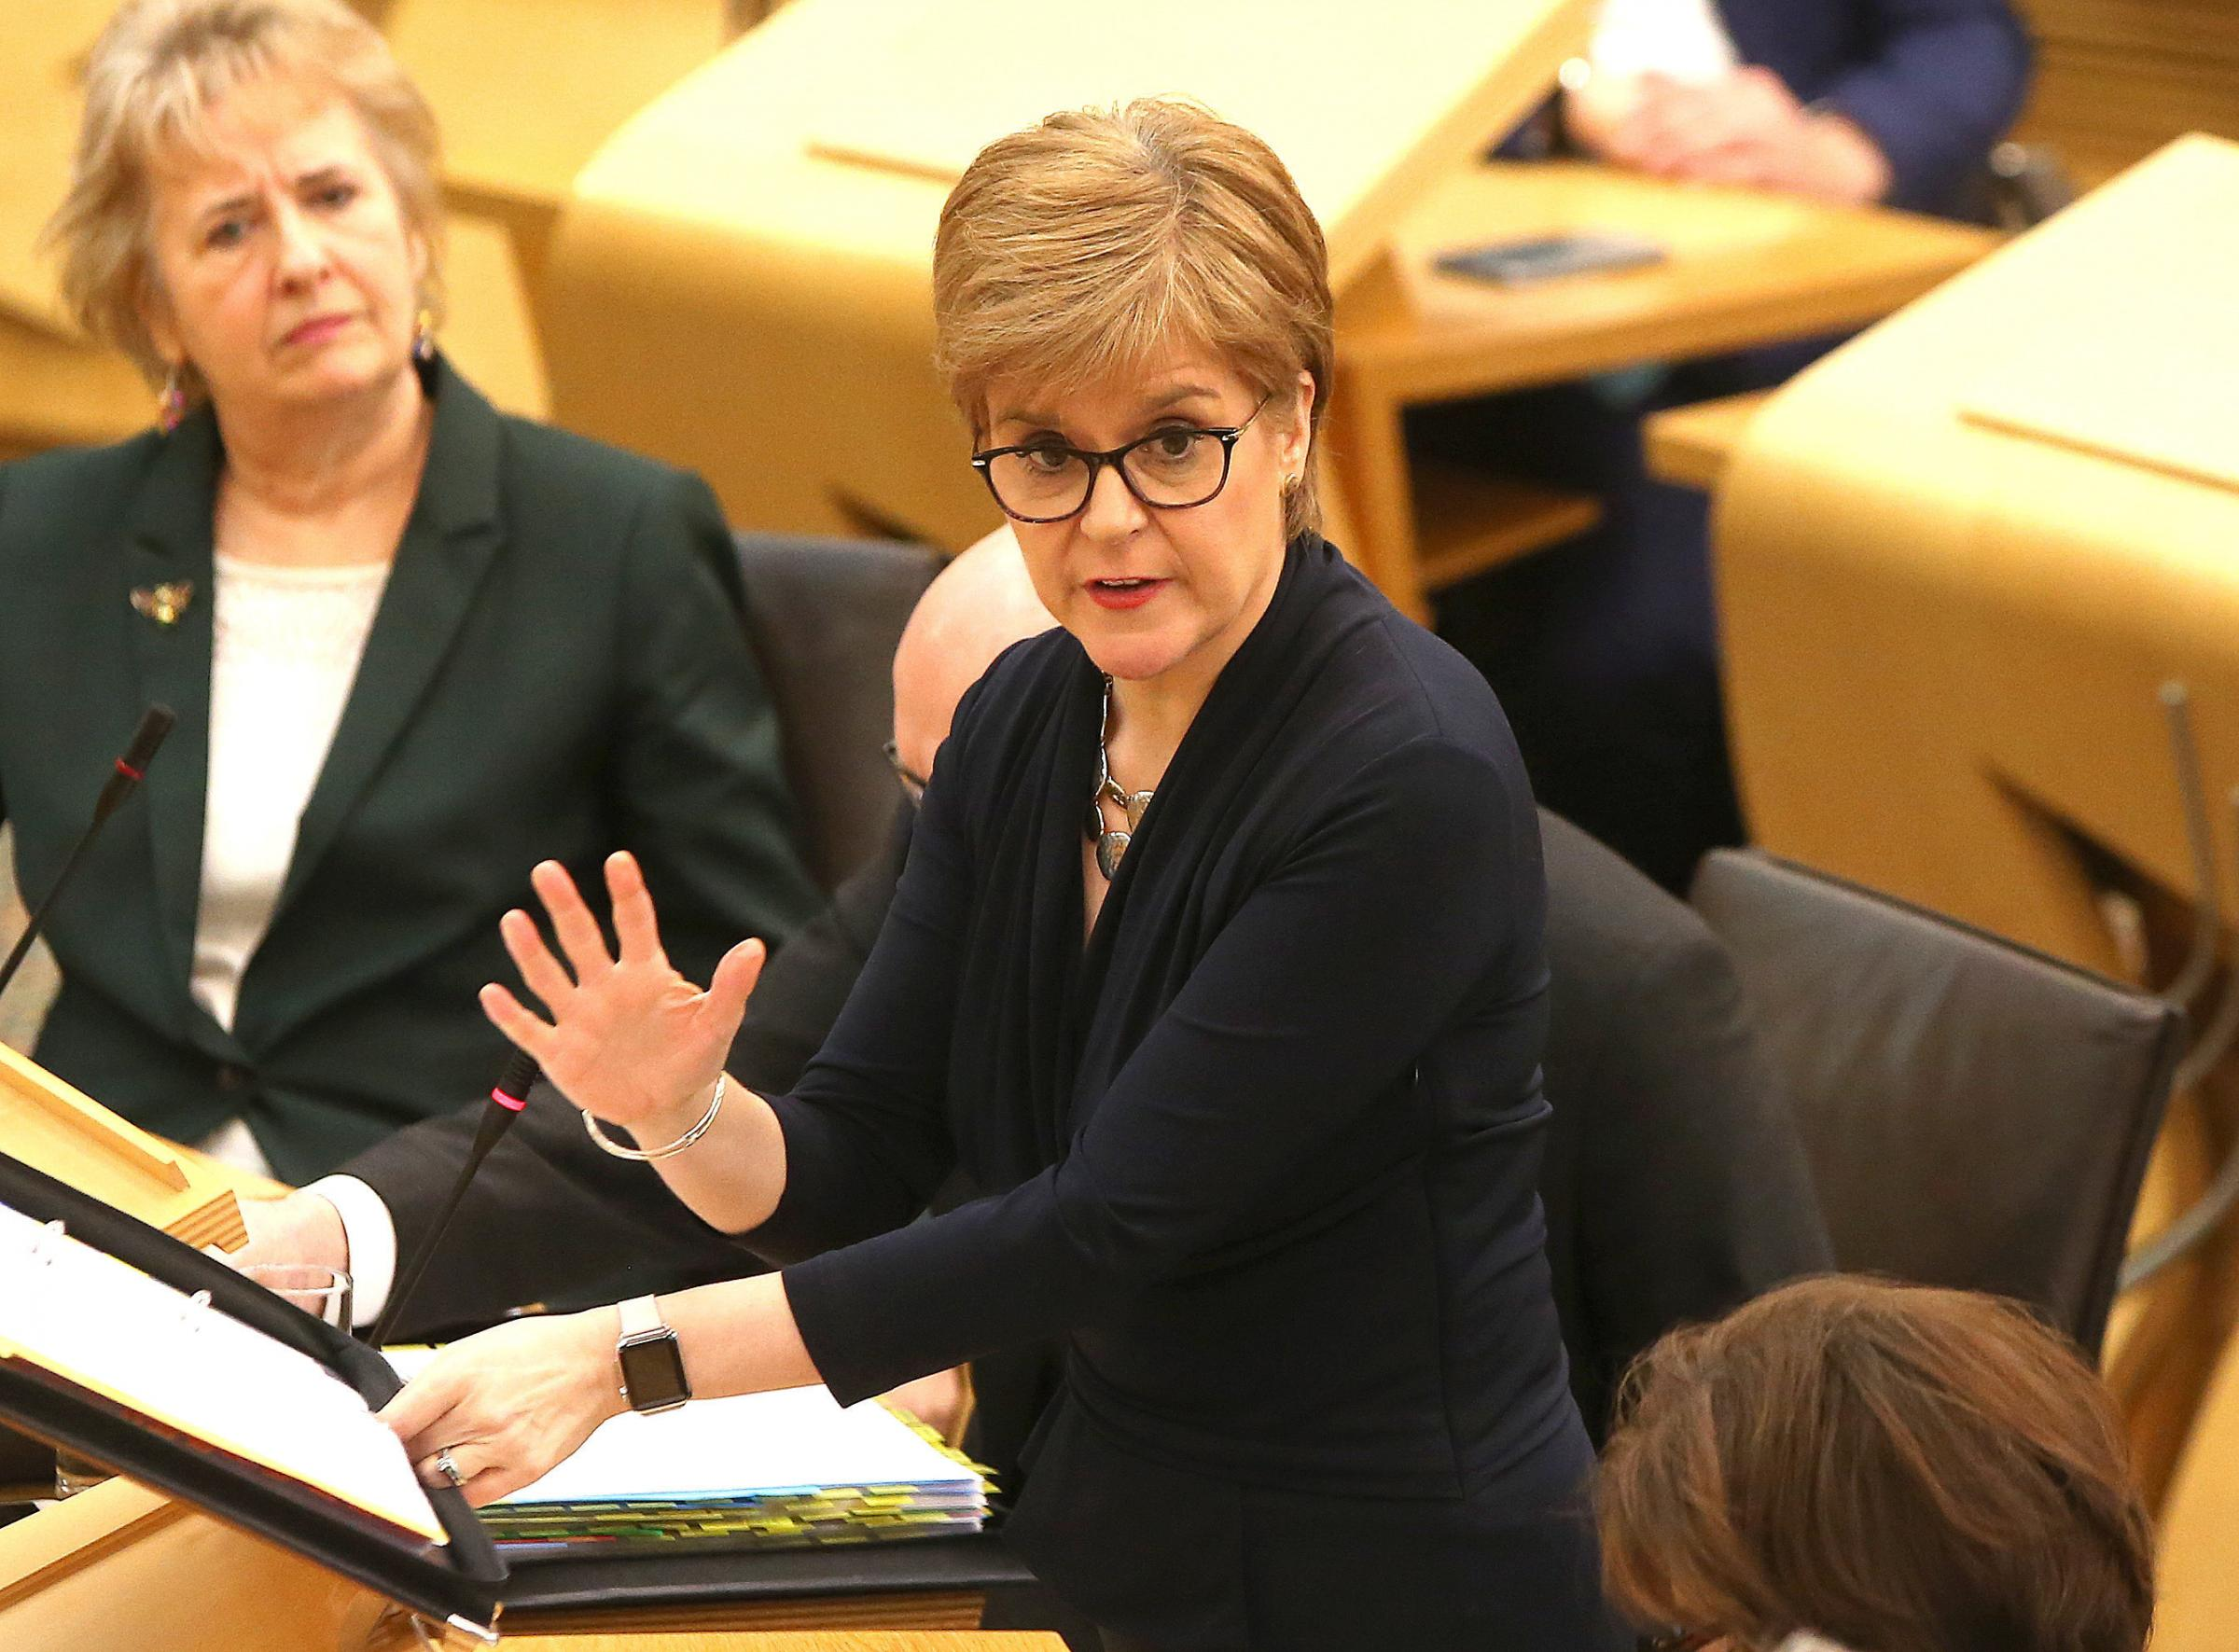 FACT CHECK: Does the SNP have a cast-iron mandate to hold indyref2?